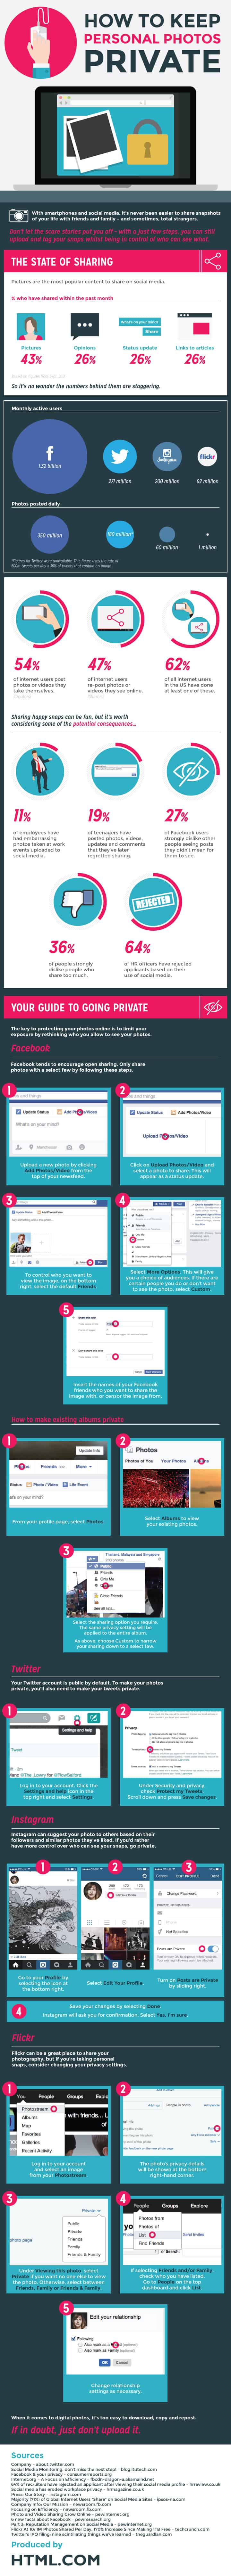 How to keep personal photos private infographic